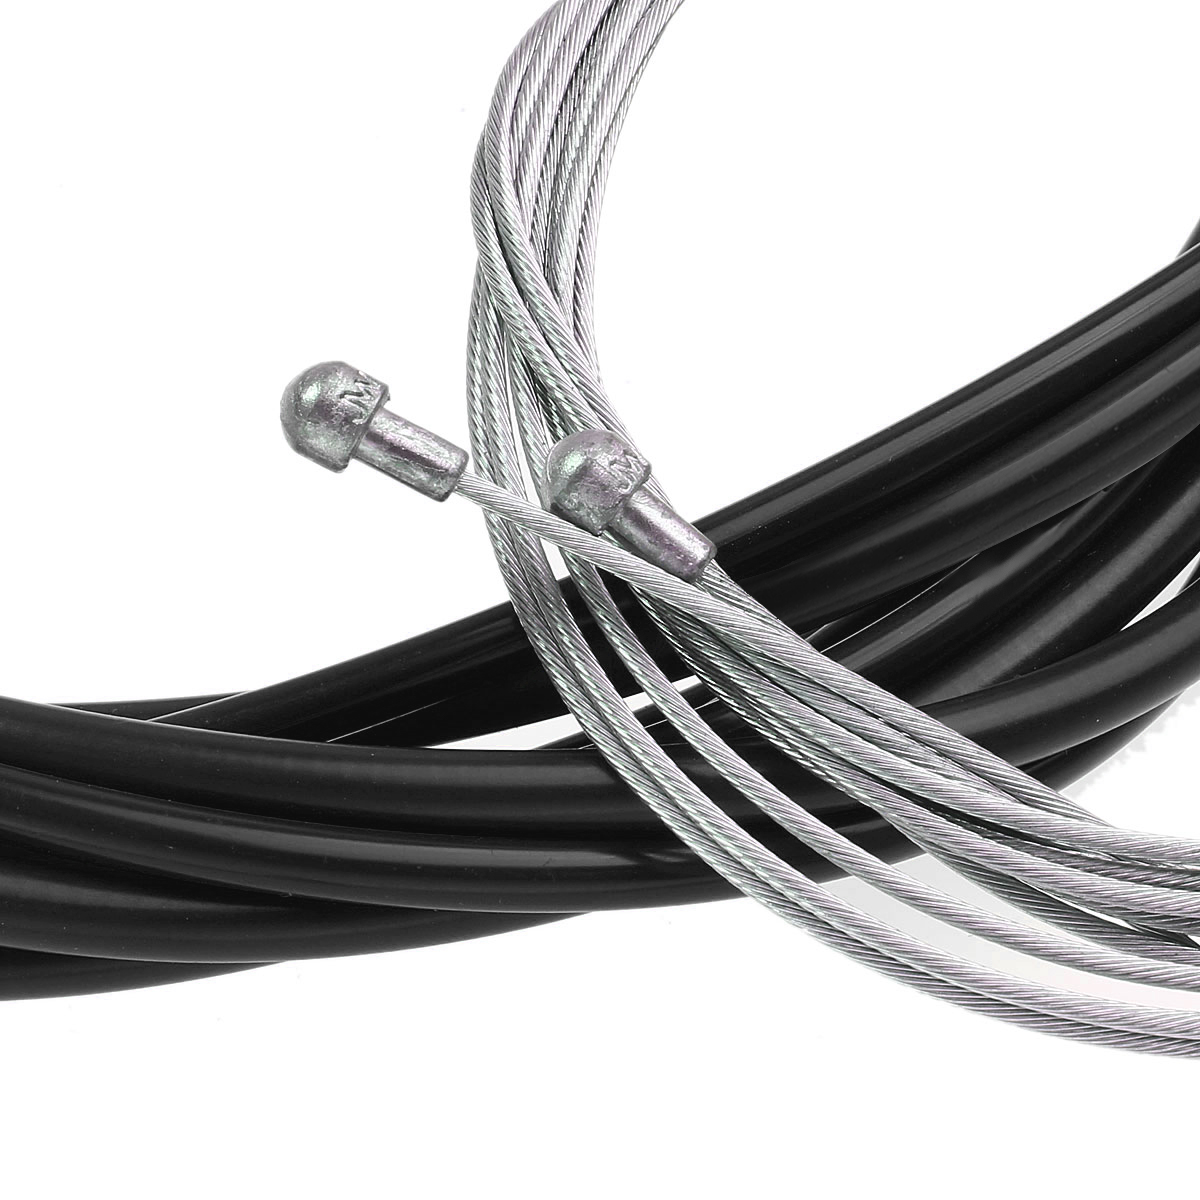 Jagwire Bike Bicycle Complete Front & Rear Inner Outer Gear Brake Wire Cable Kit - Black